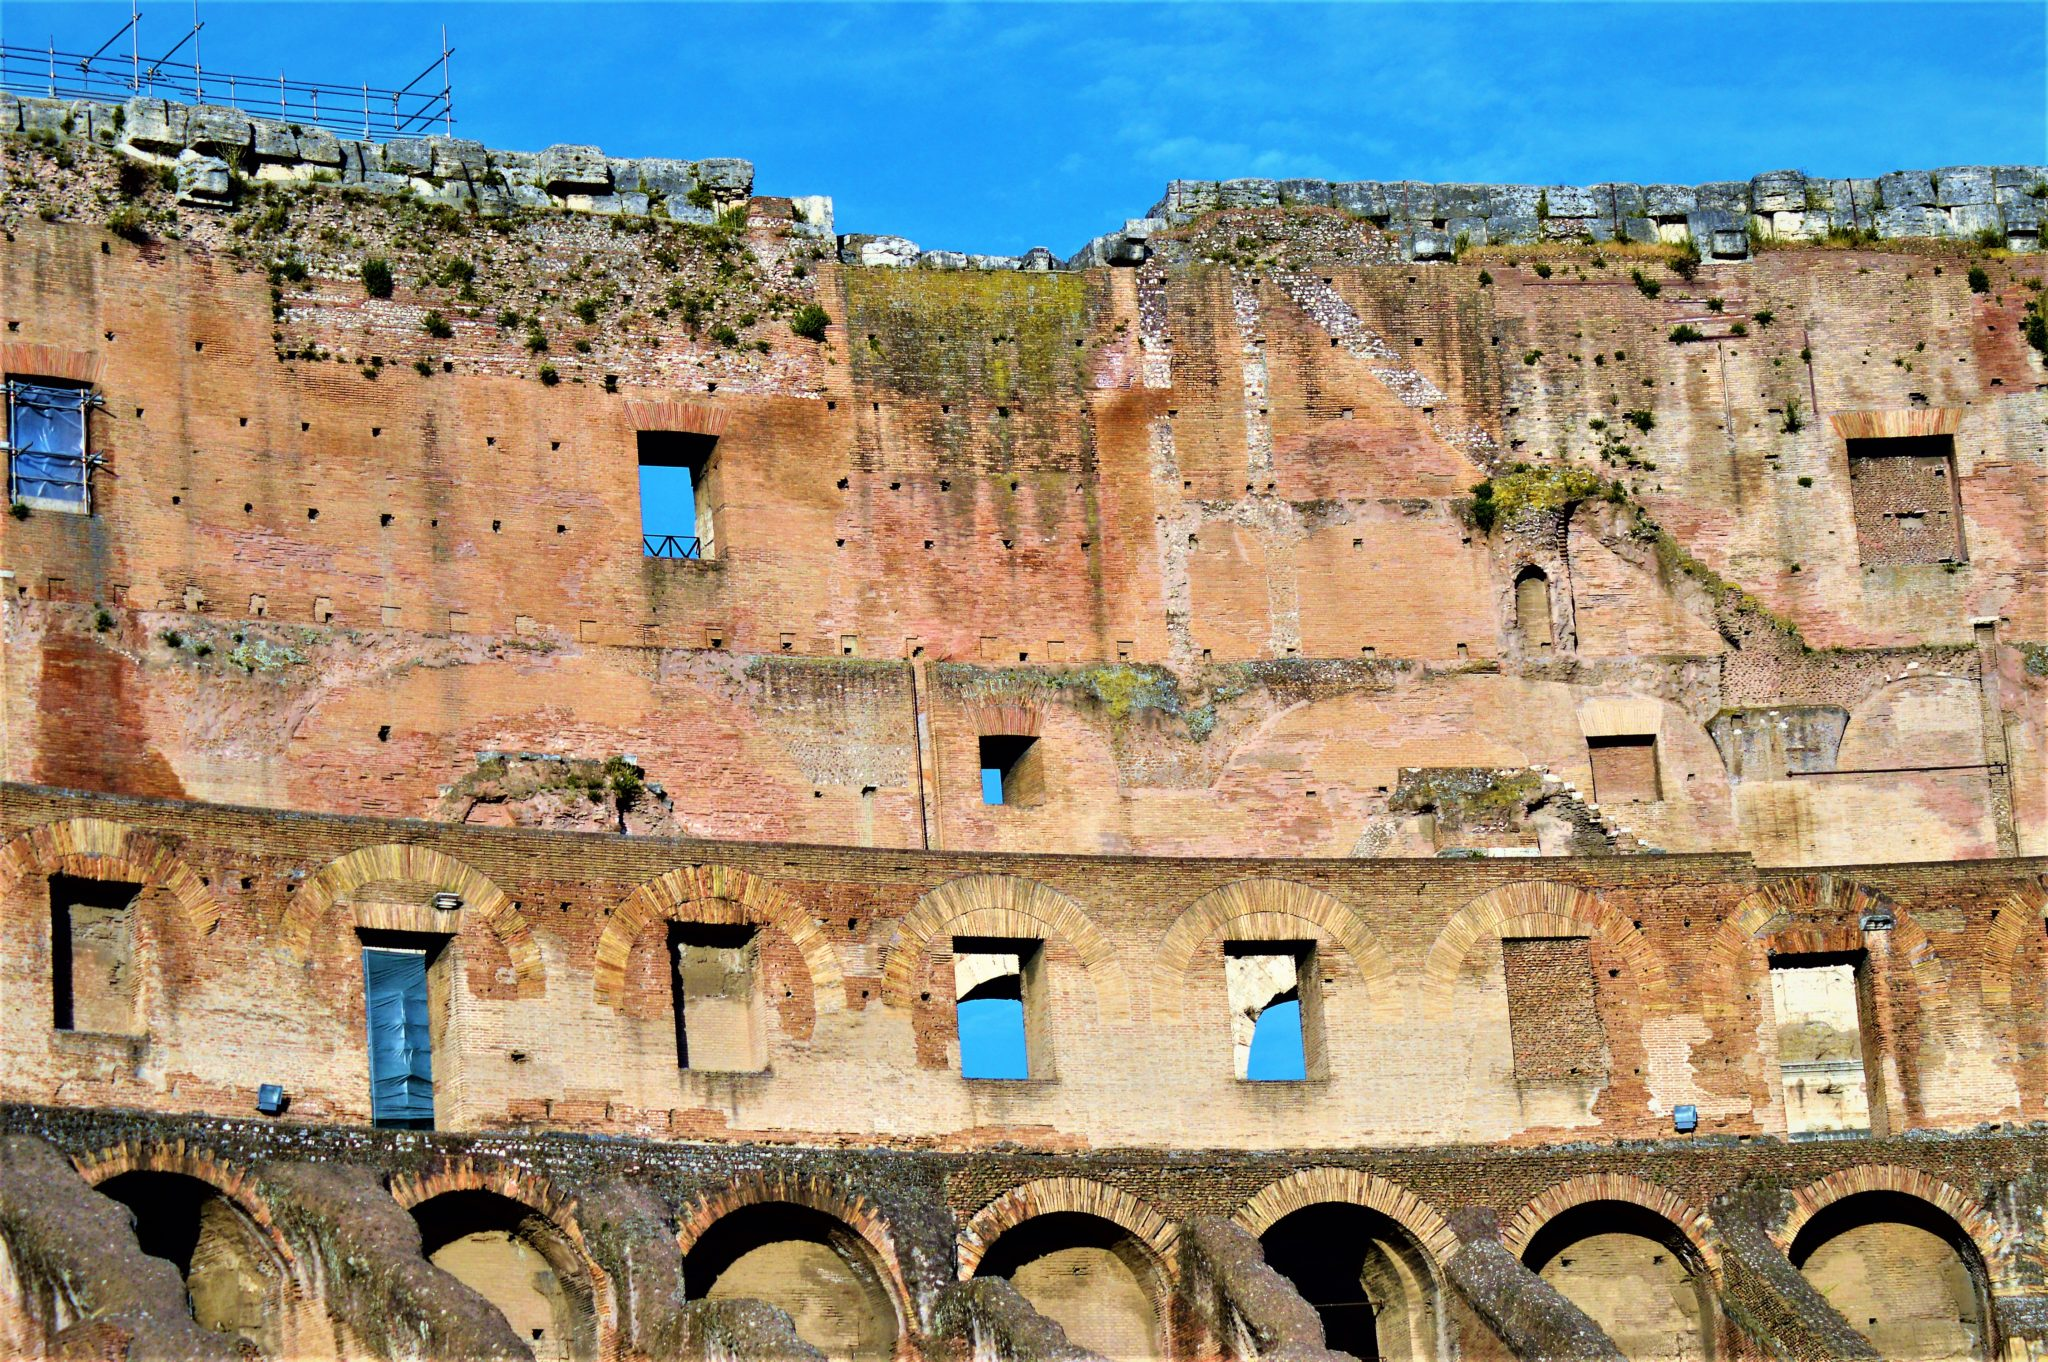 Wall and windows inside the Colosseum, Rome, Italy